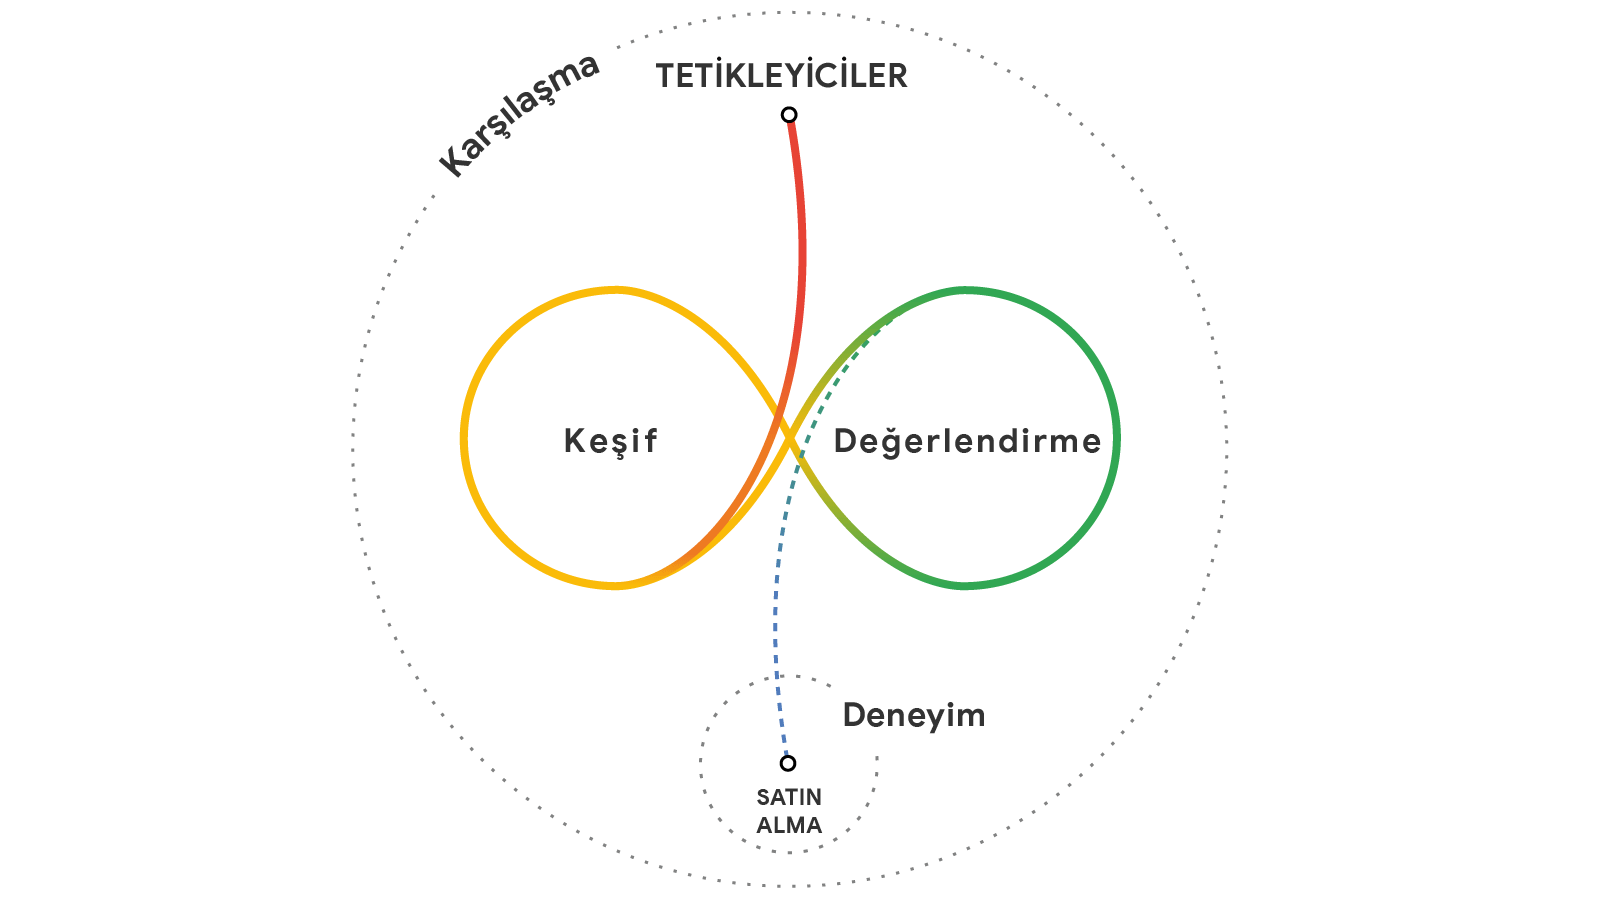 How_people_decide_what_to_buy_lies_in_the_messy_middle_of_the_purchase_j_o9bTIeanoktalı.png